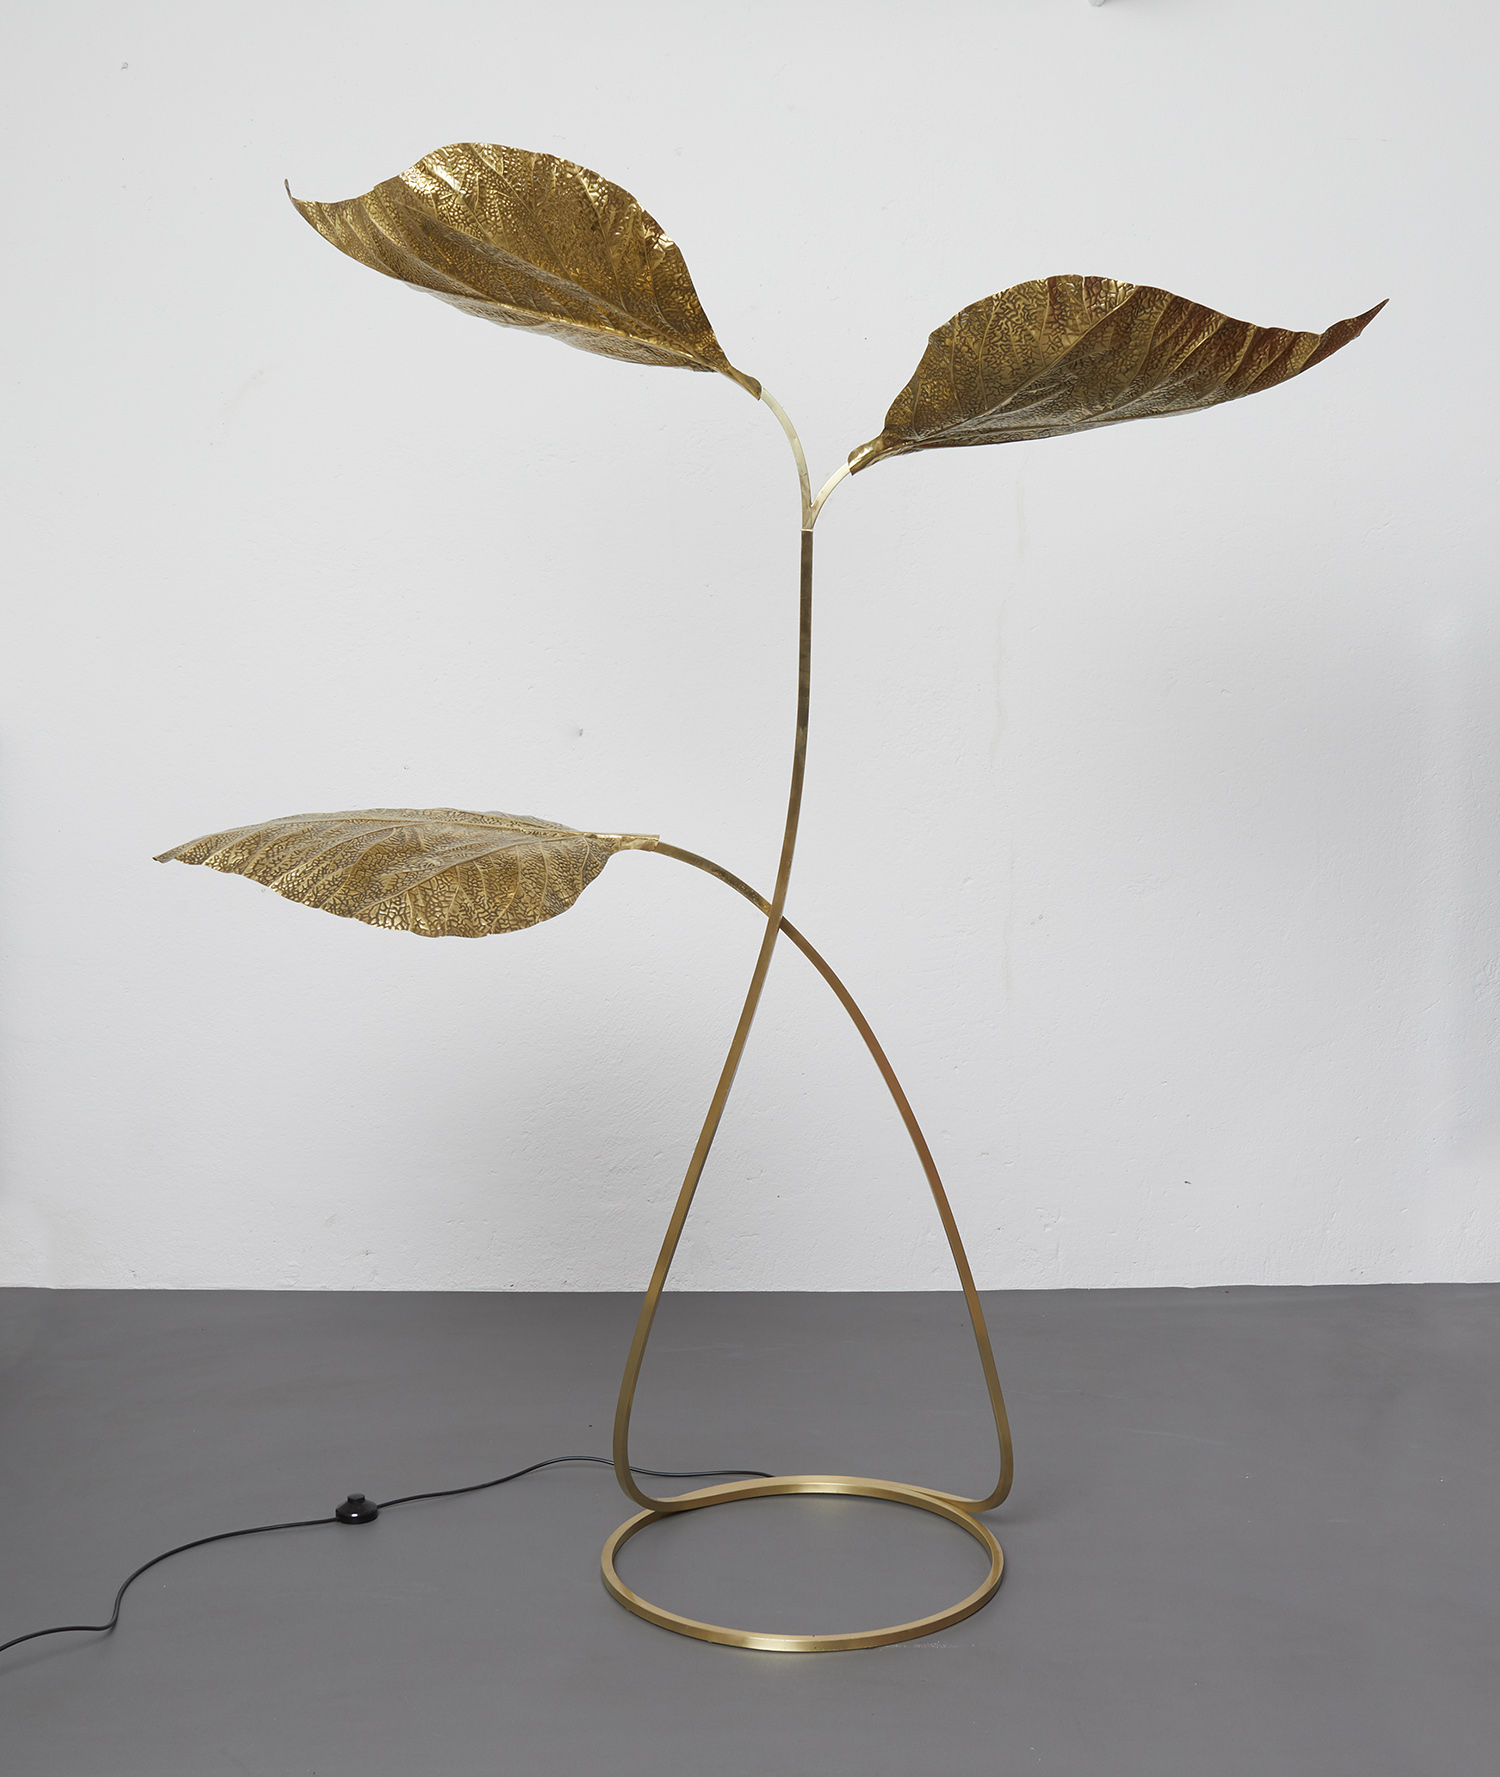 carlo-giorgi-brass-floor-lamp-with-three-leaves-for-bottega-gadda-italy-1970-image-14